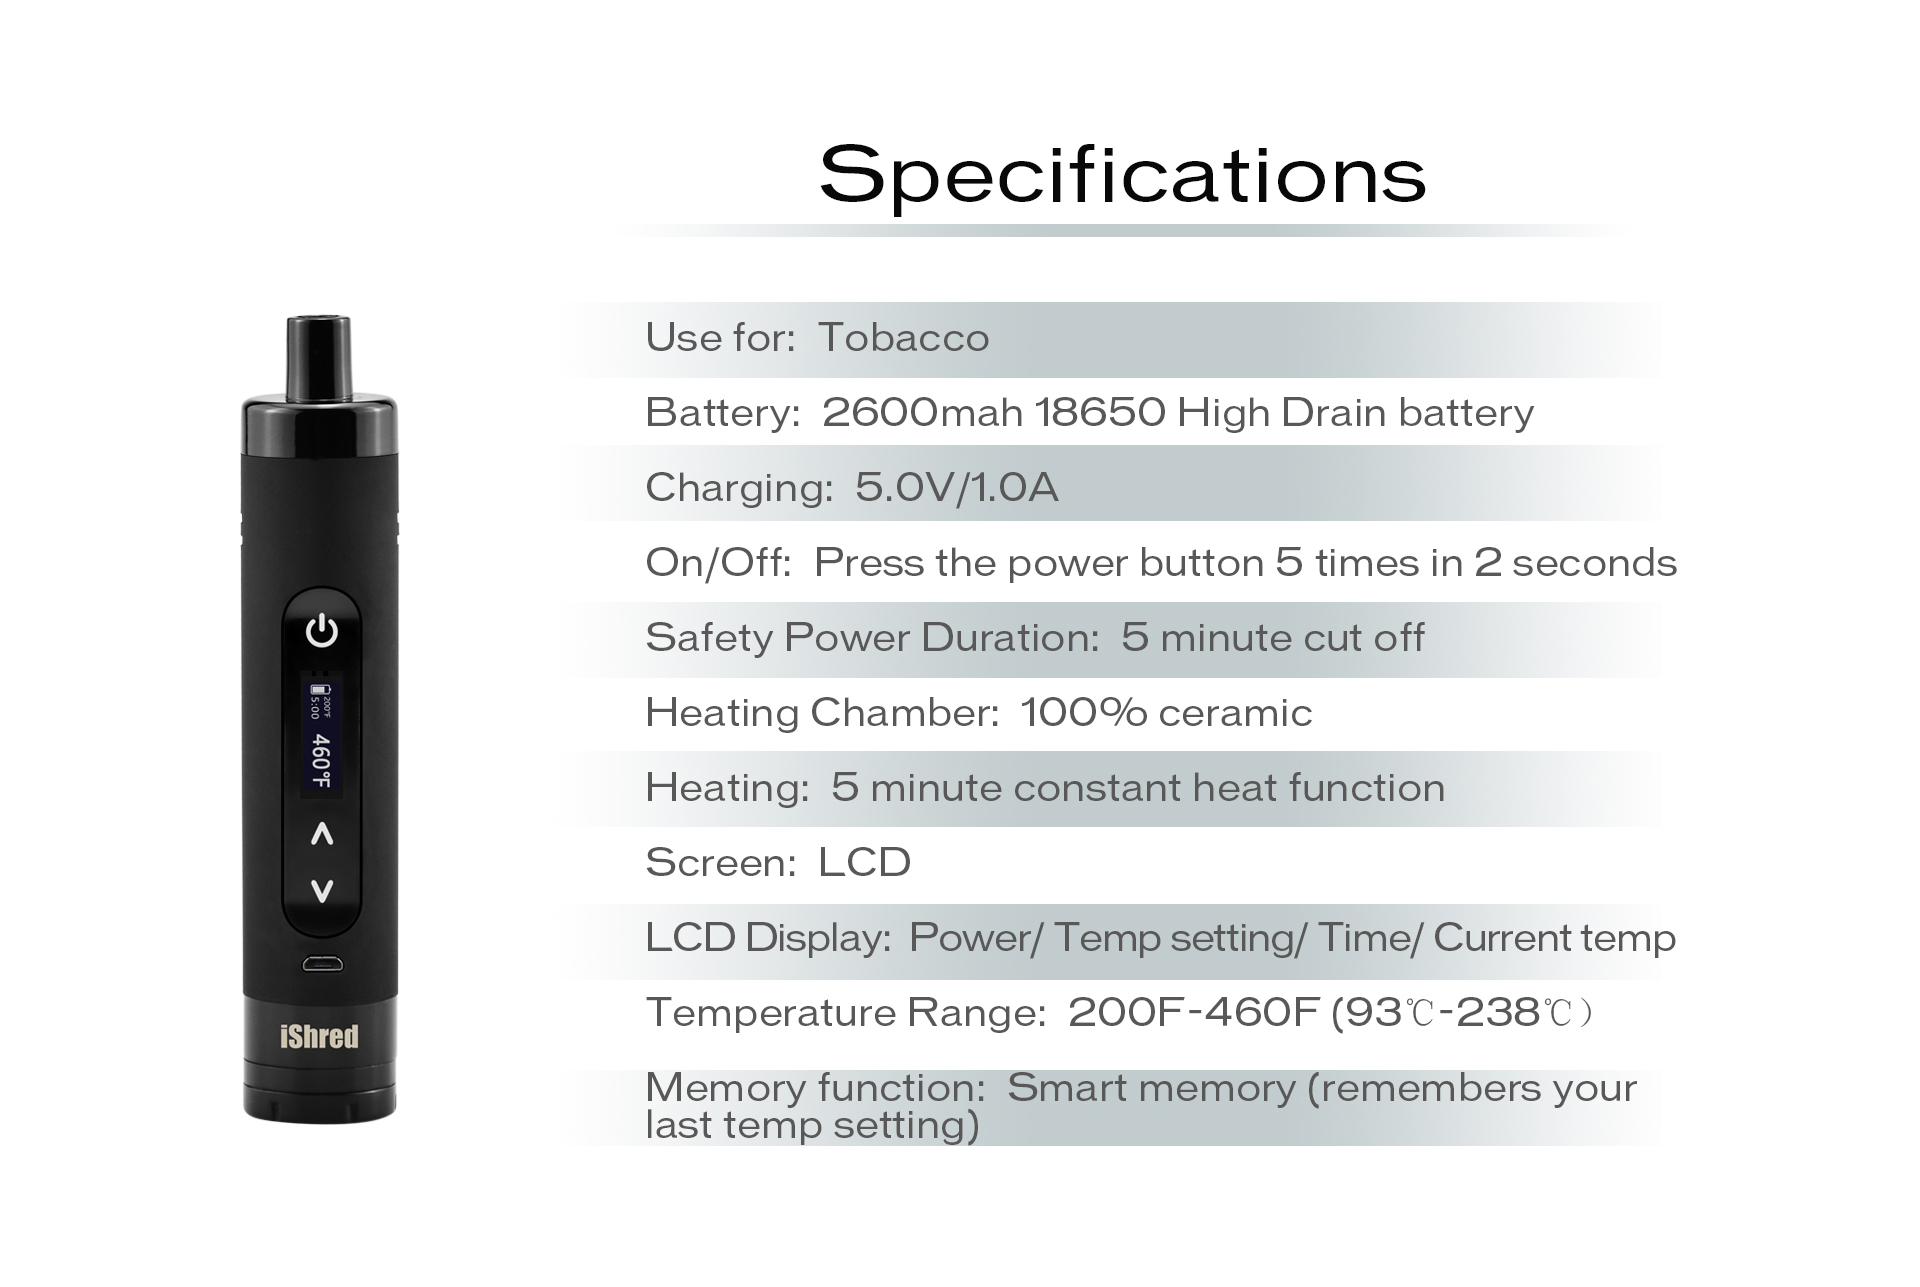 The Specifications of Yocan iShred introduce.